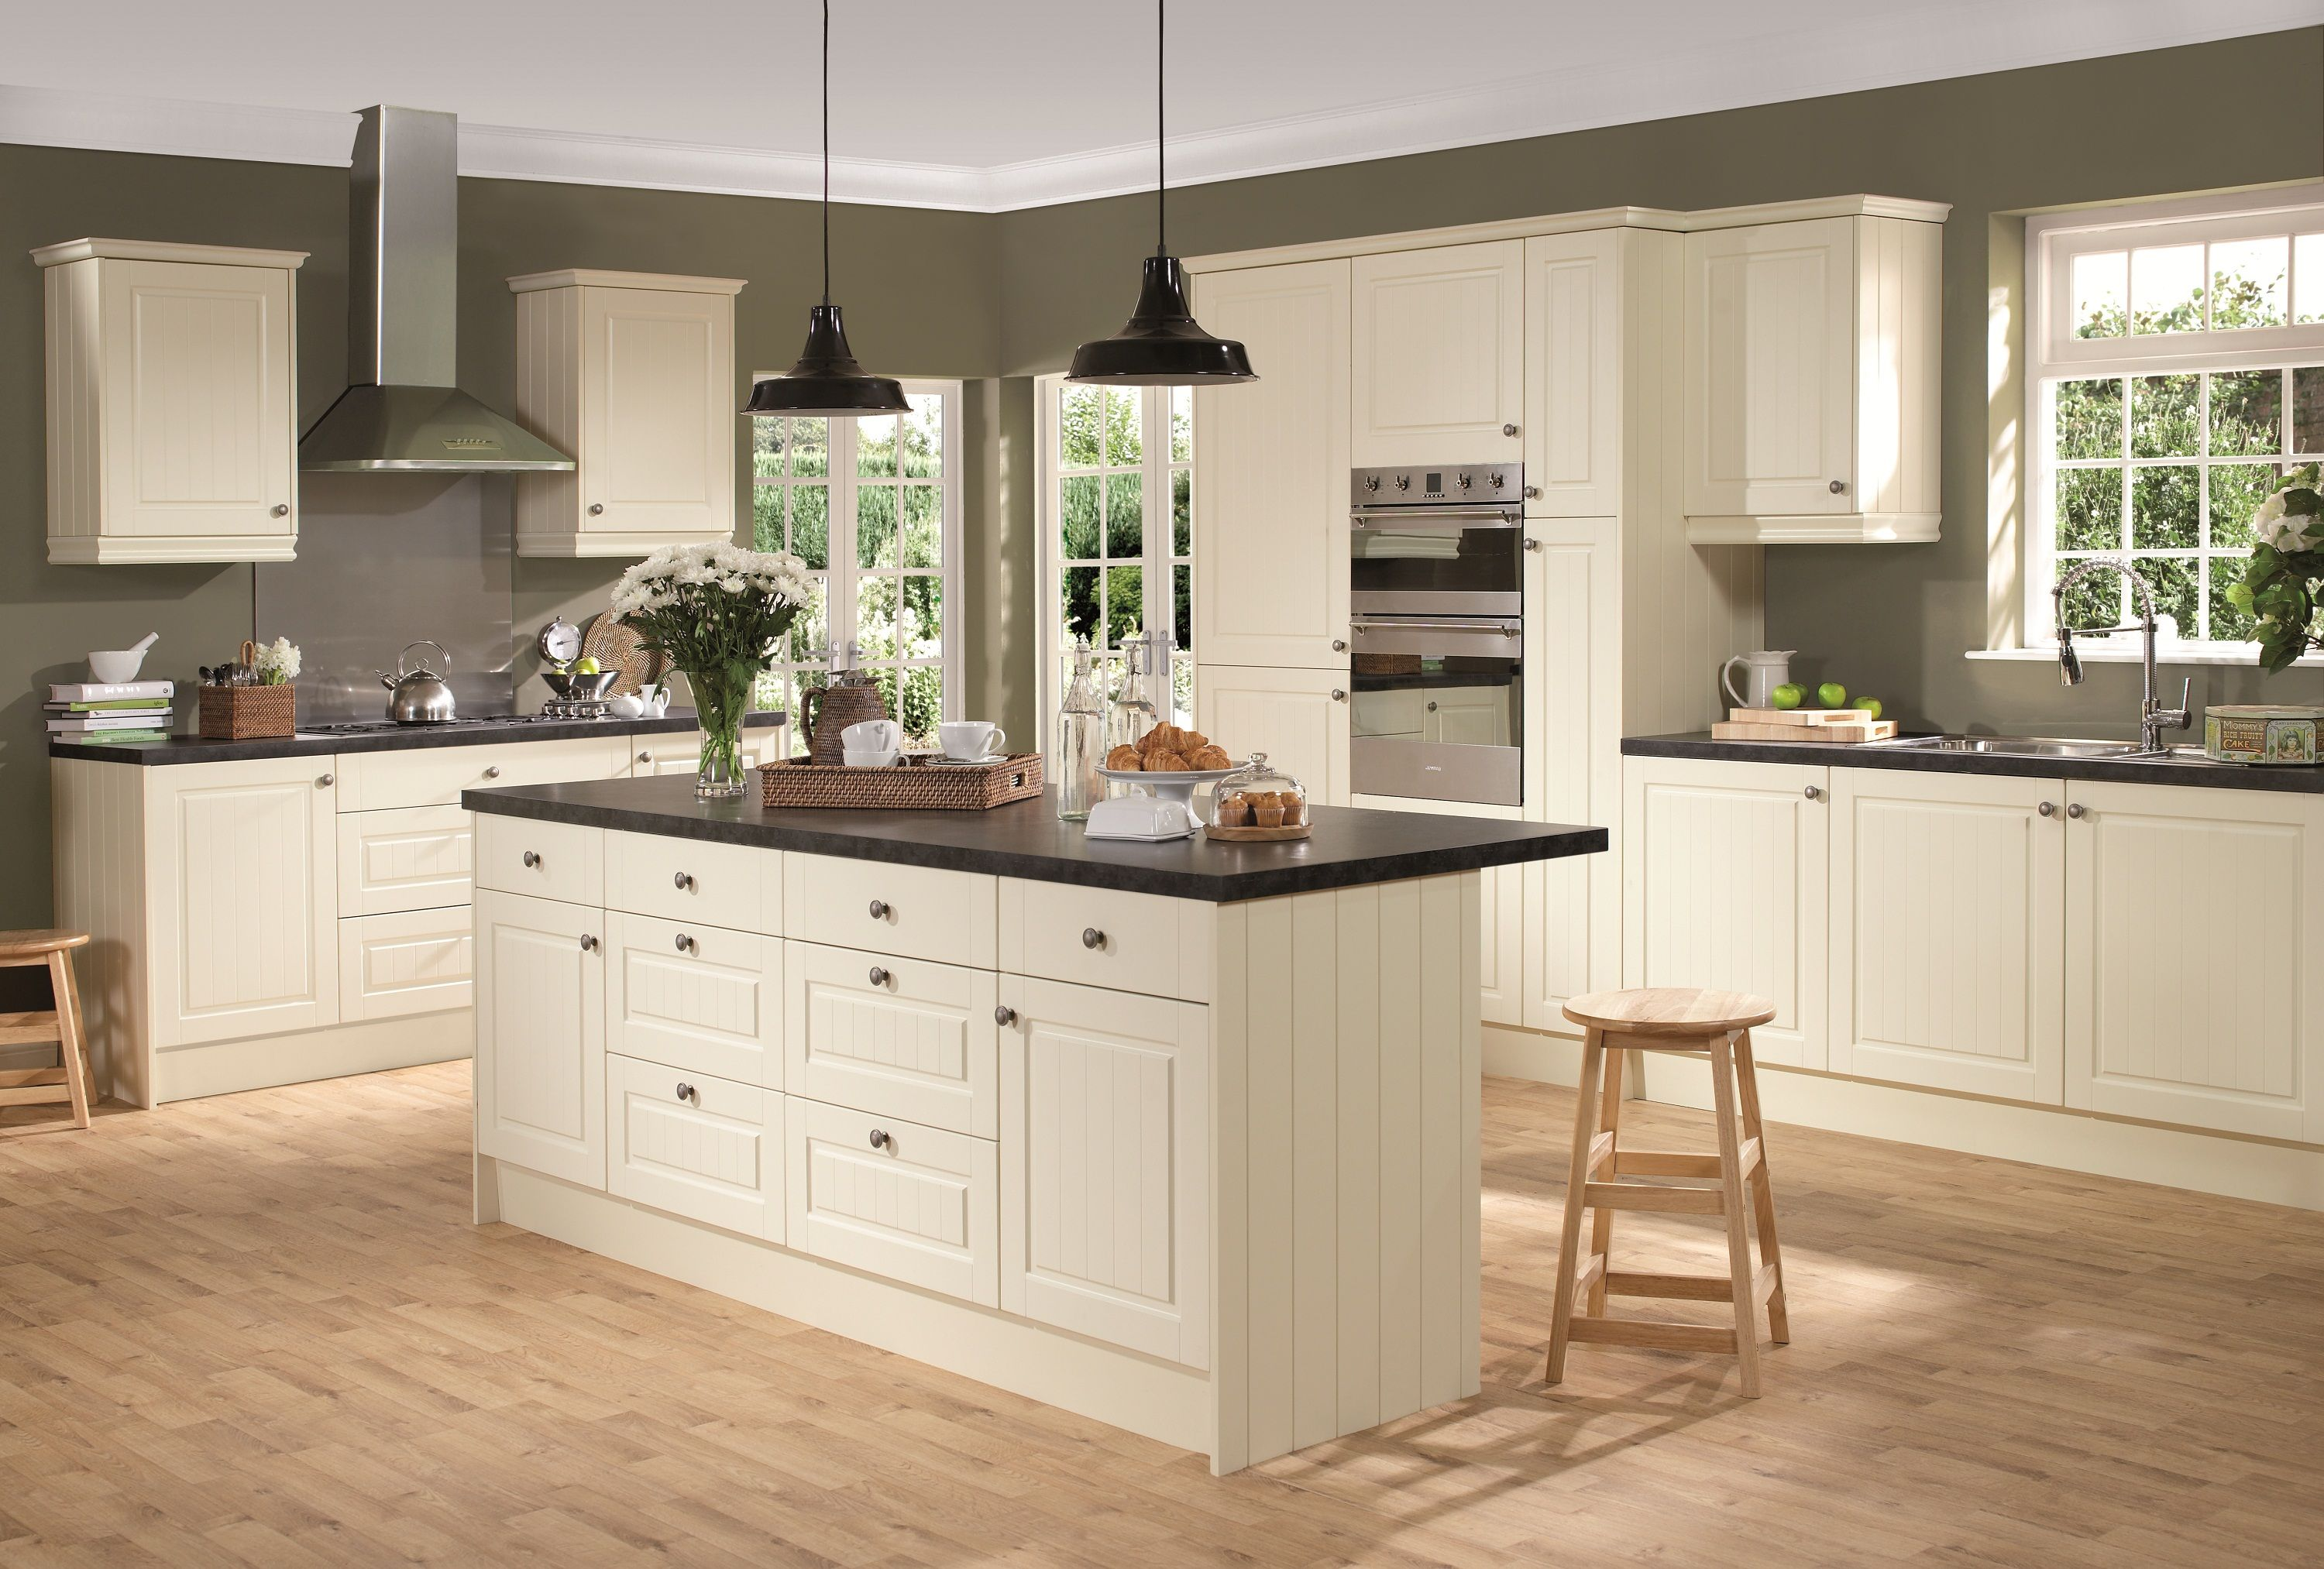 Faversham - A country classic kitchen with a tongue and grooved ...